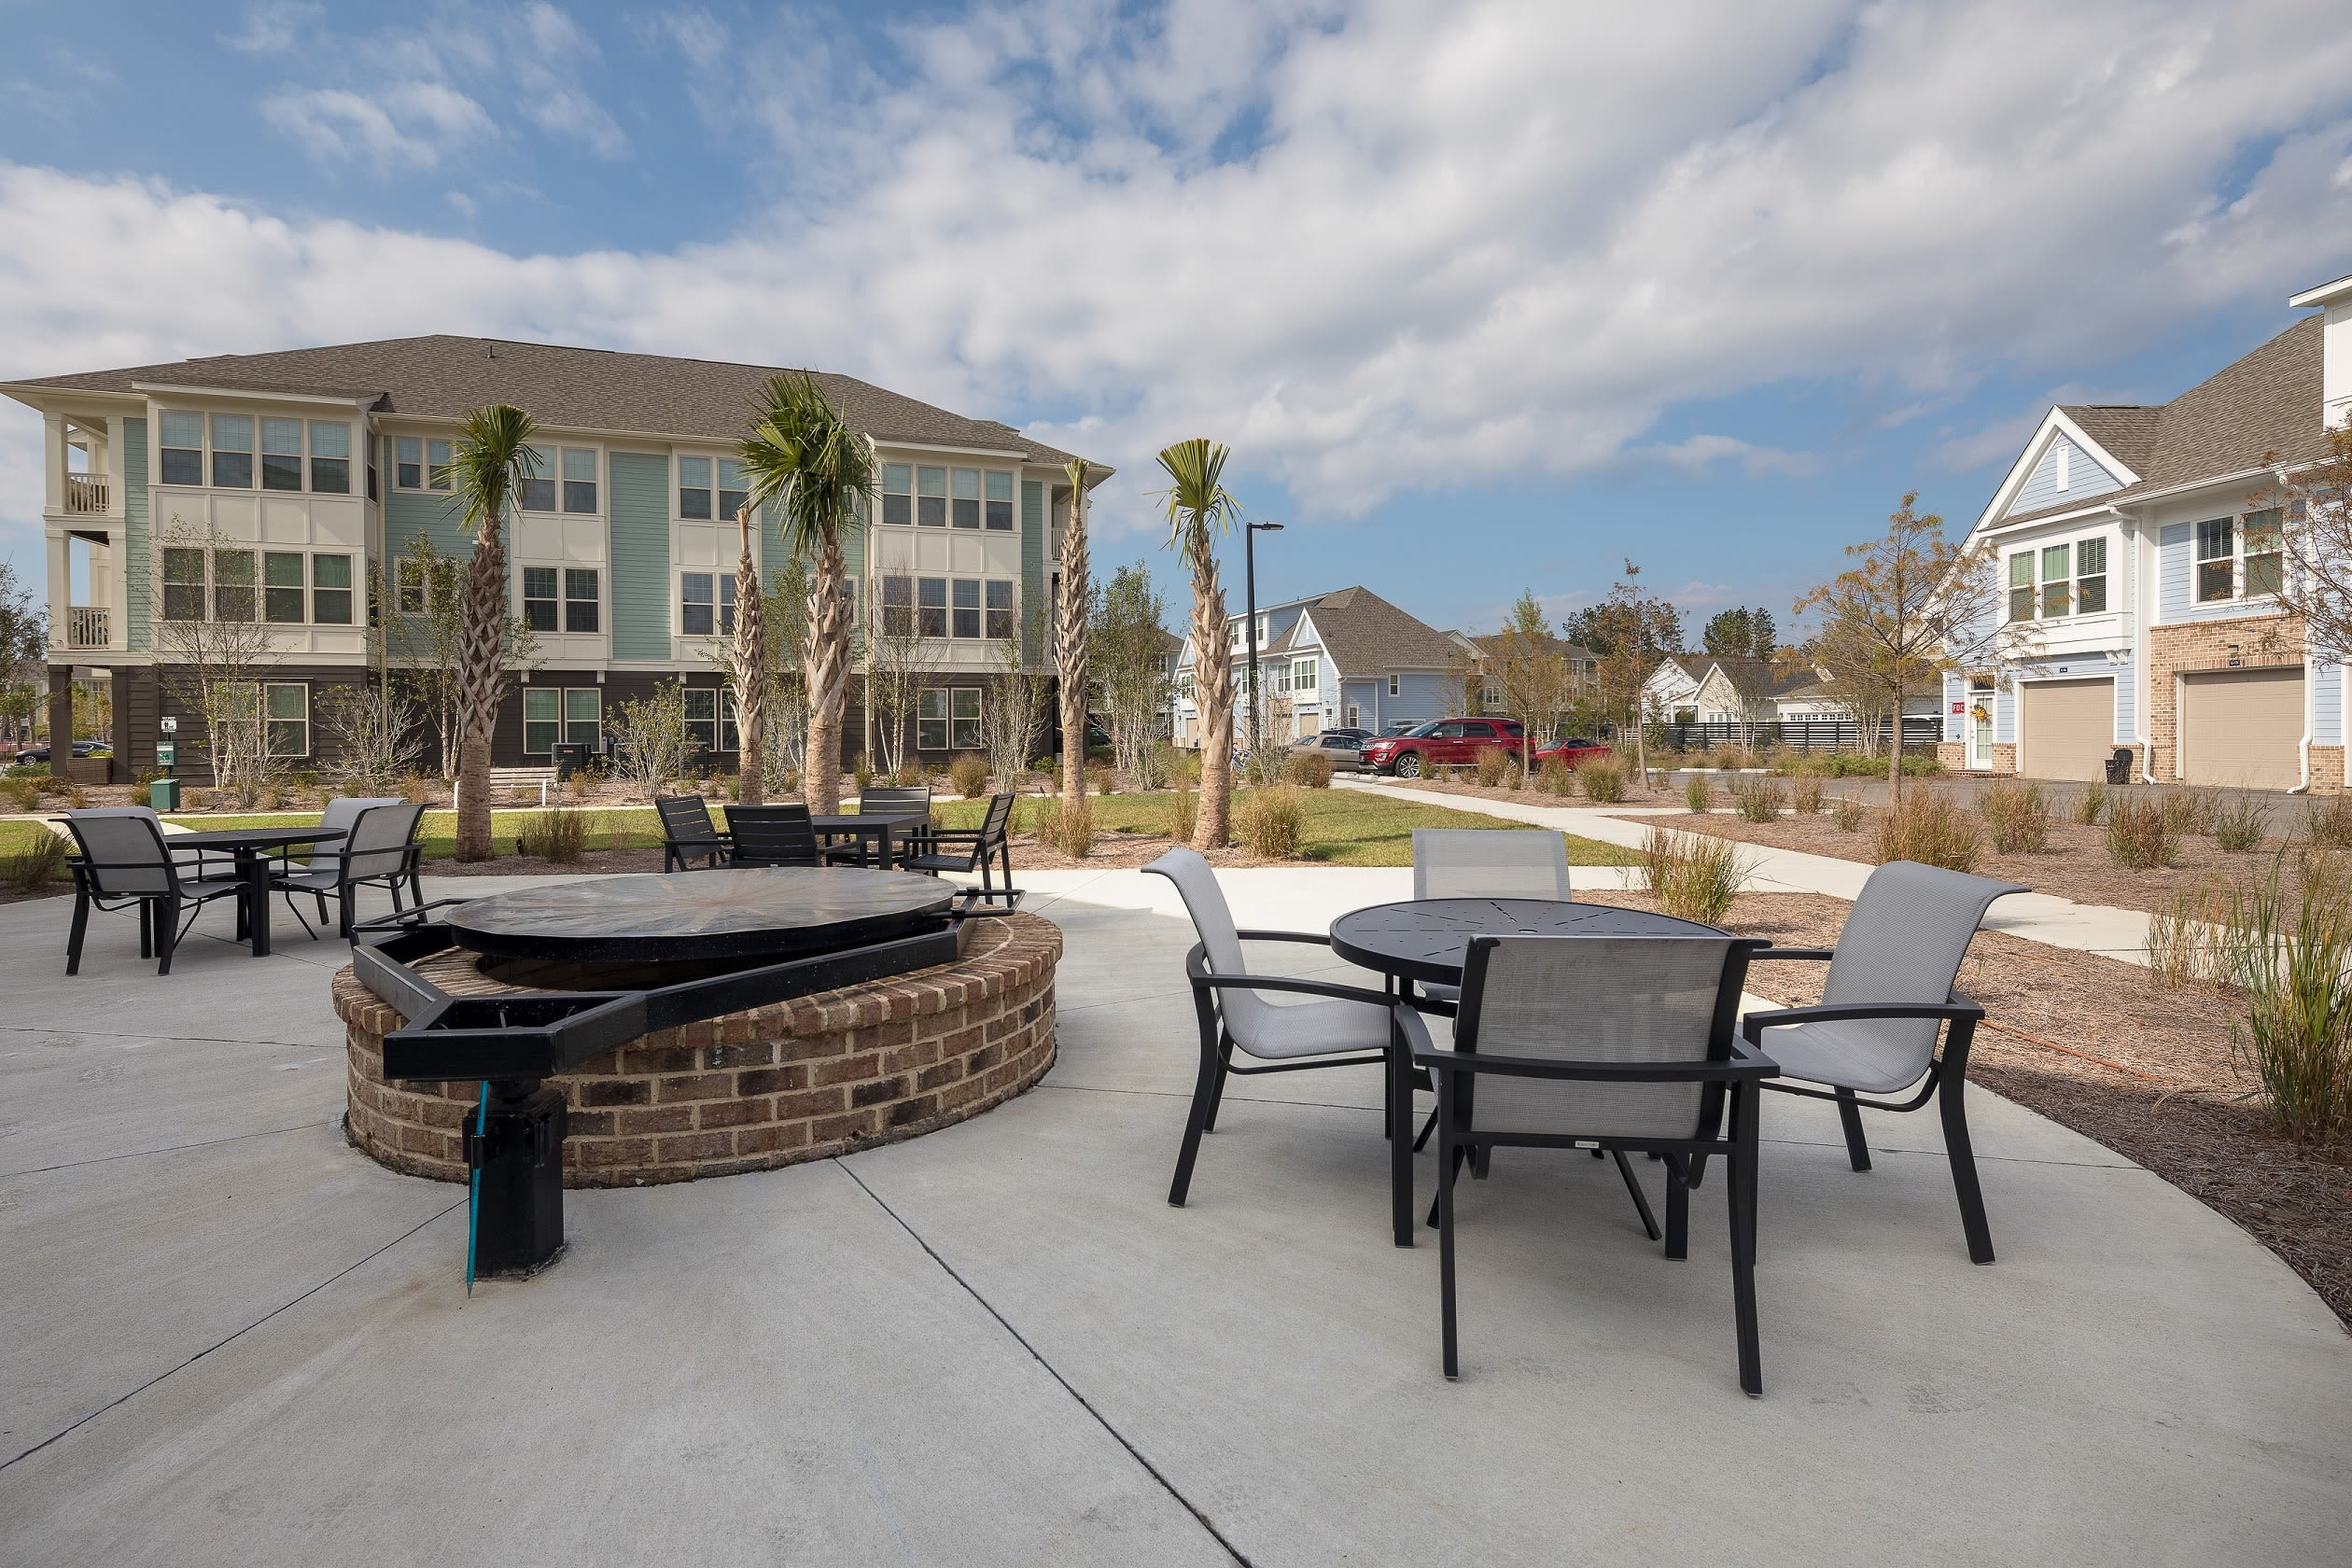 Outdoor seating at Elevate at Brighton Park in Summerville, South Carolina